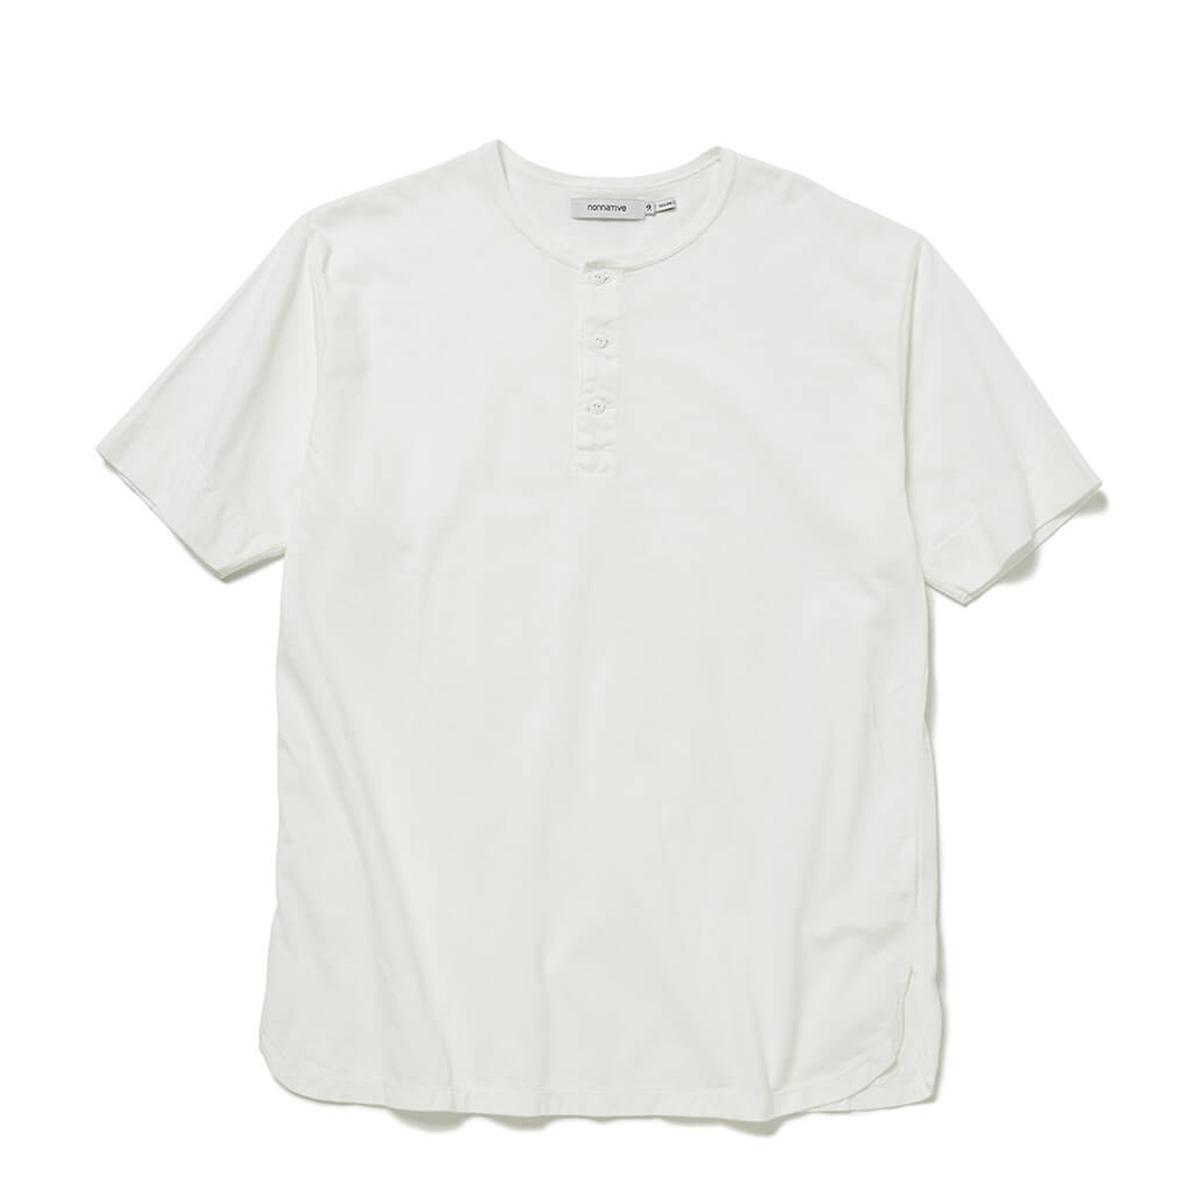 nonnative / TROOPER HENLEY NECK S/S TEE COTTON JERSEY OVERDYED (White)